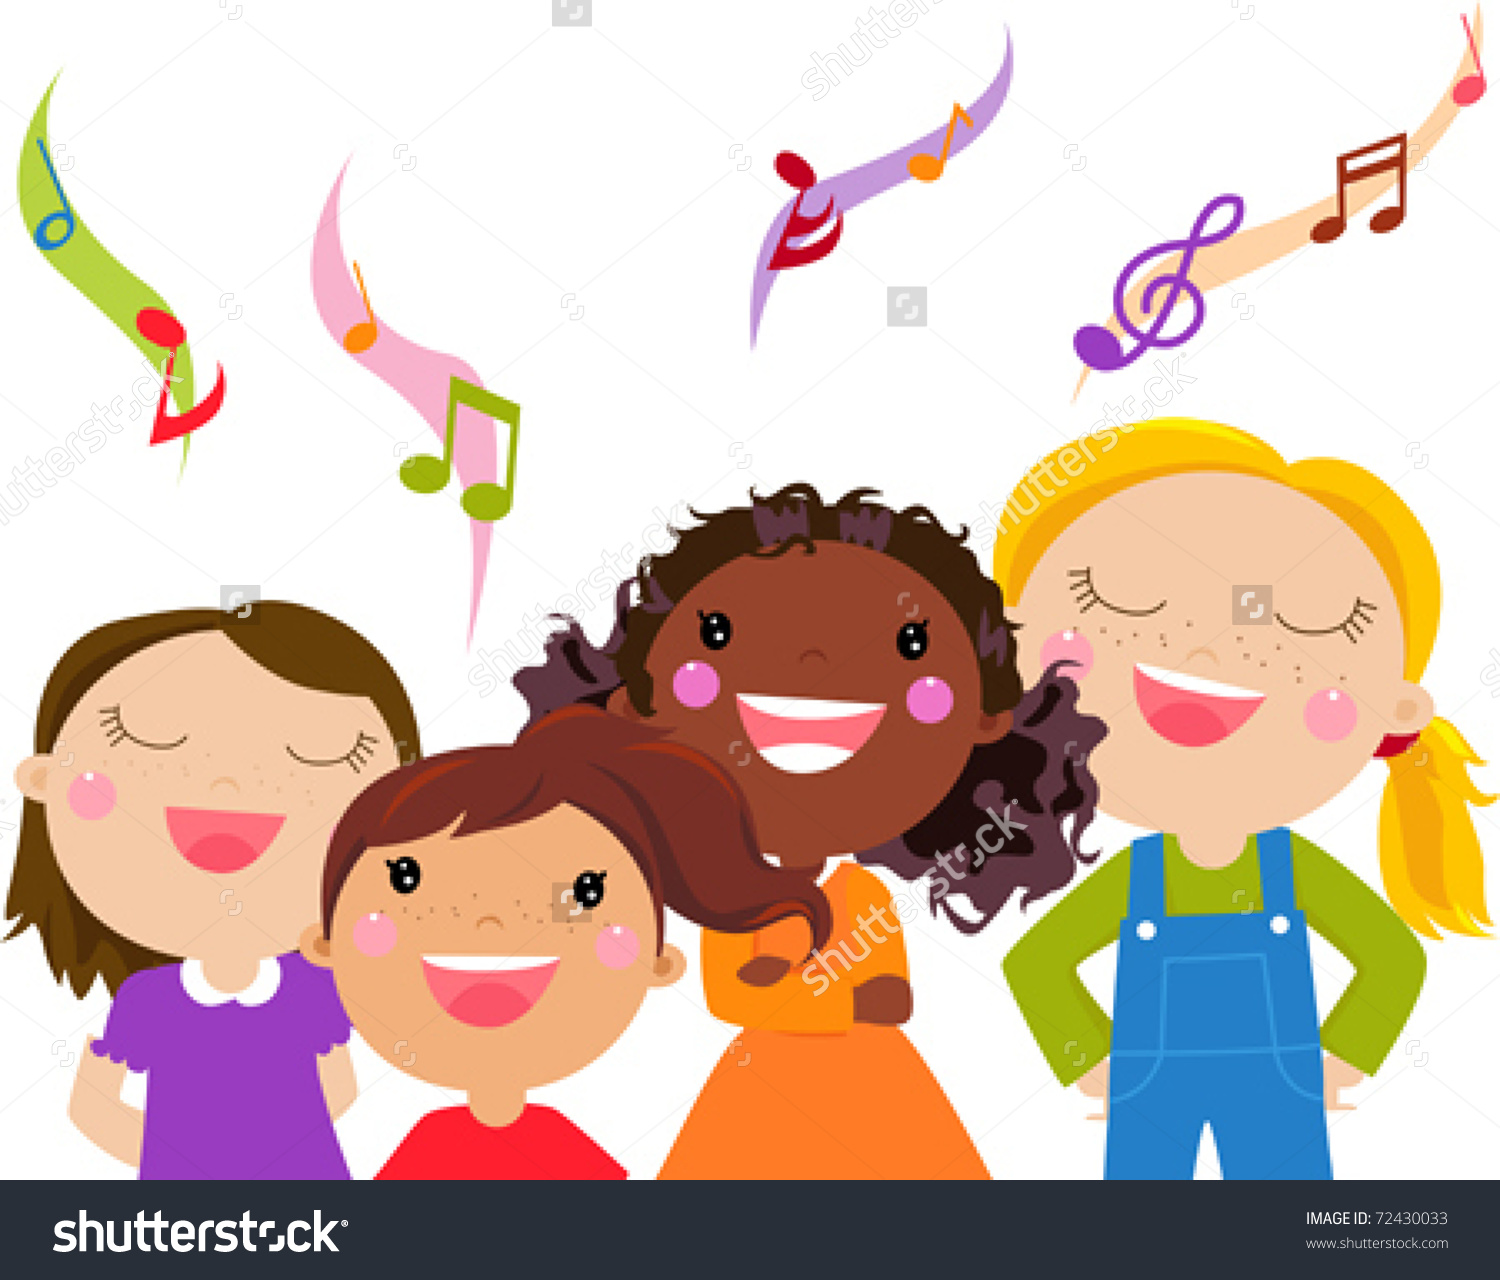 Singer clipart group singing Collection about clipart Clipart Singing